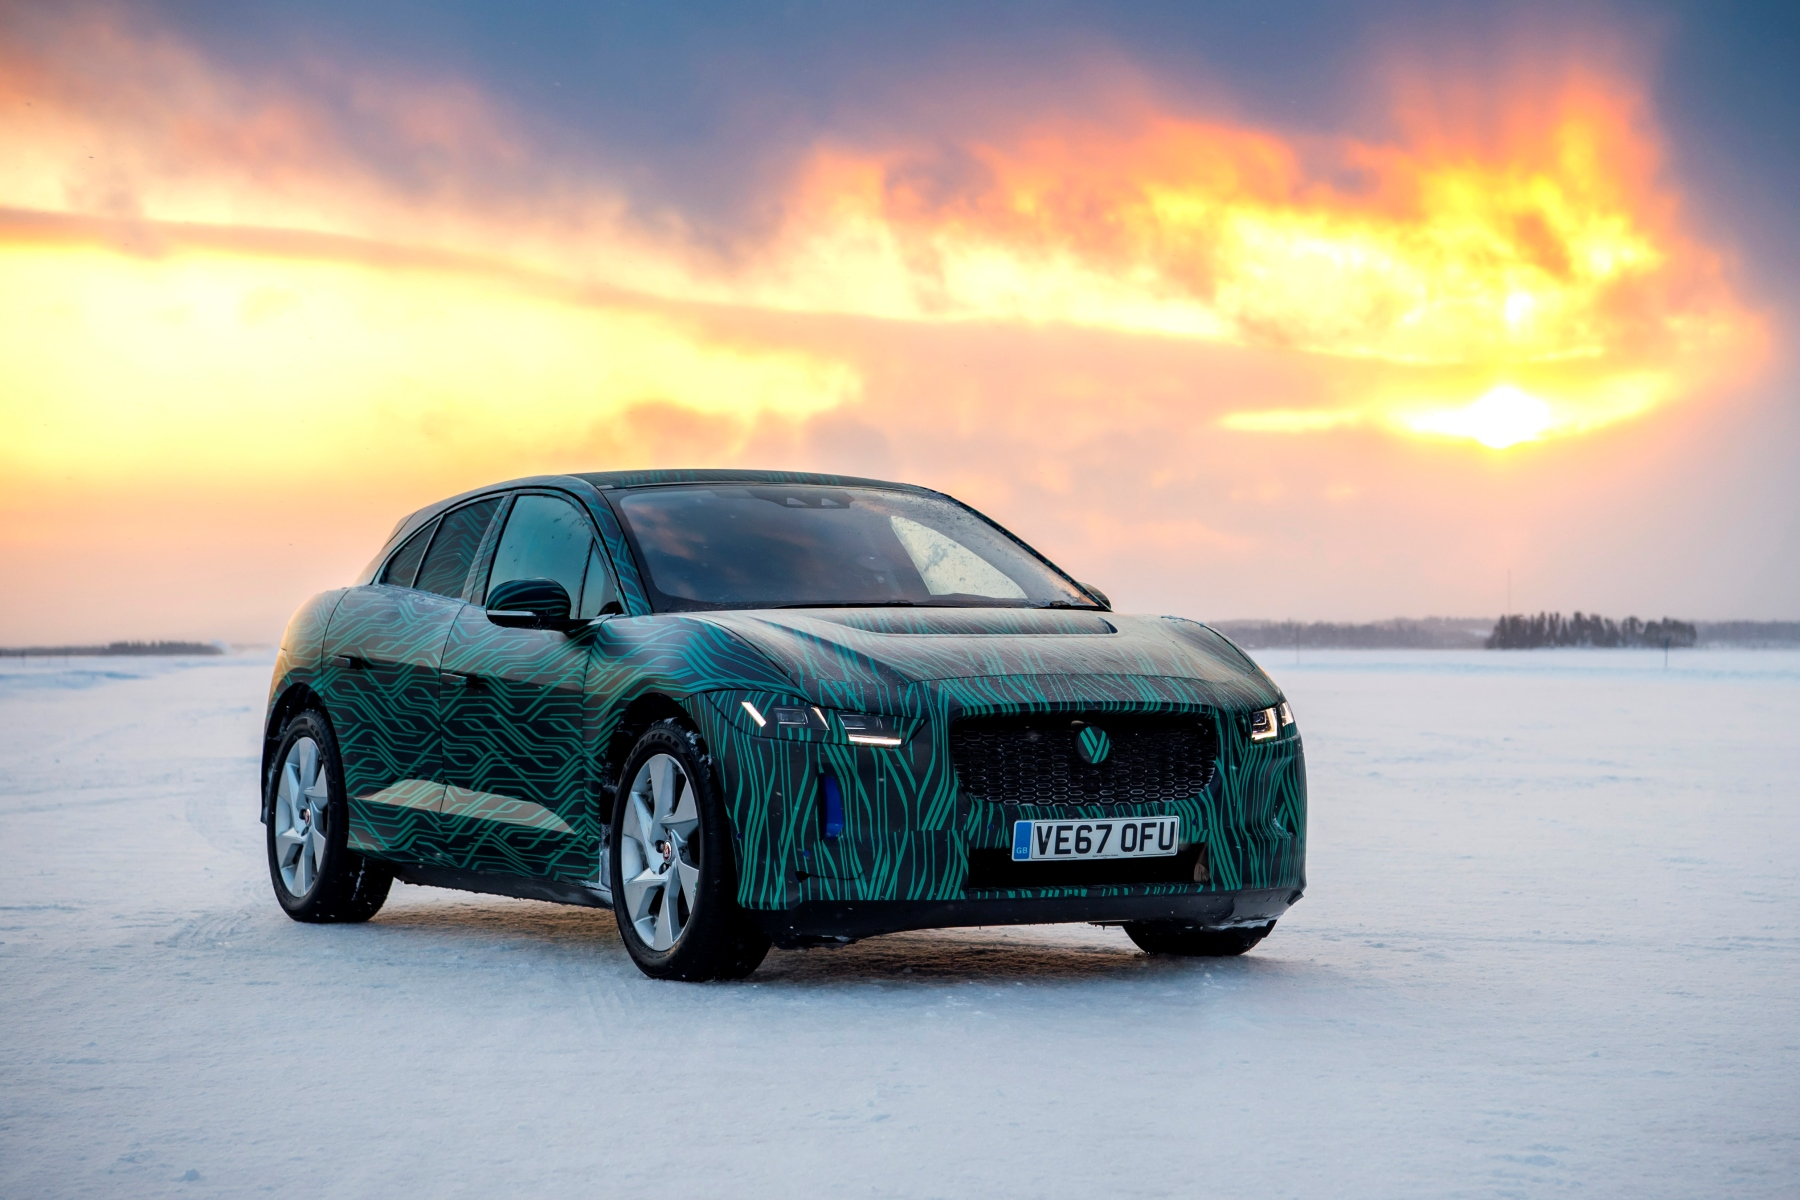 Ice cool I-Pace leads Jaguar's electric charge